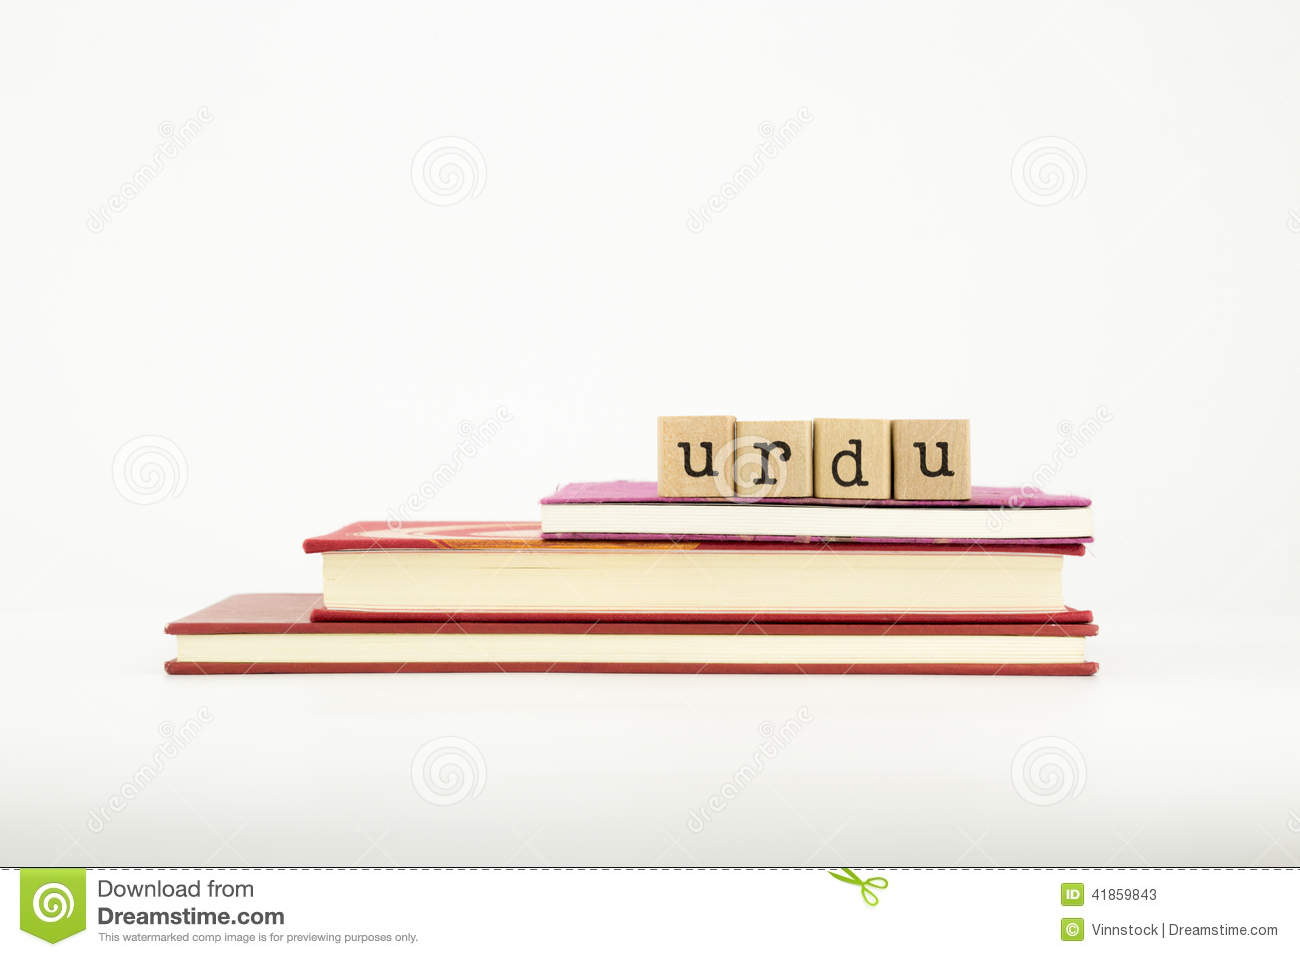 Urdu Language Word On Wood Stamps And Books Stock Image